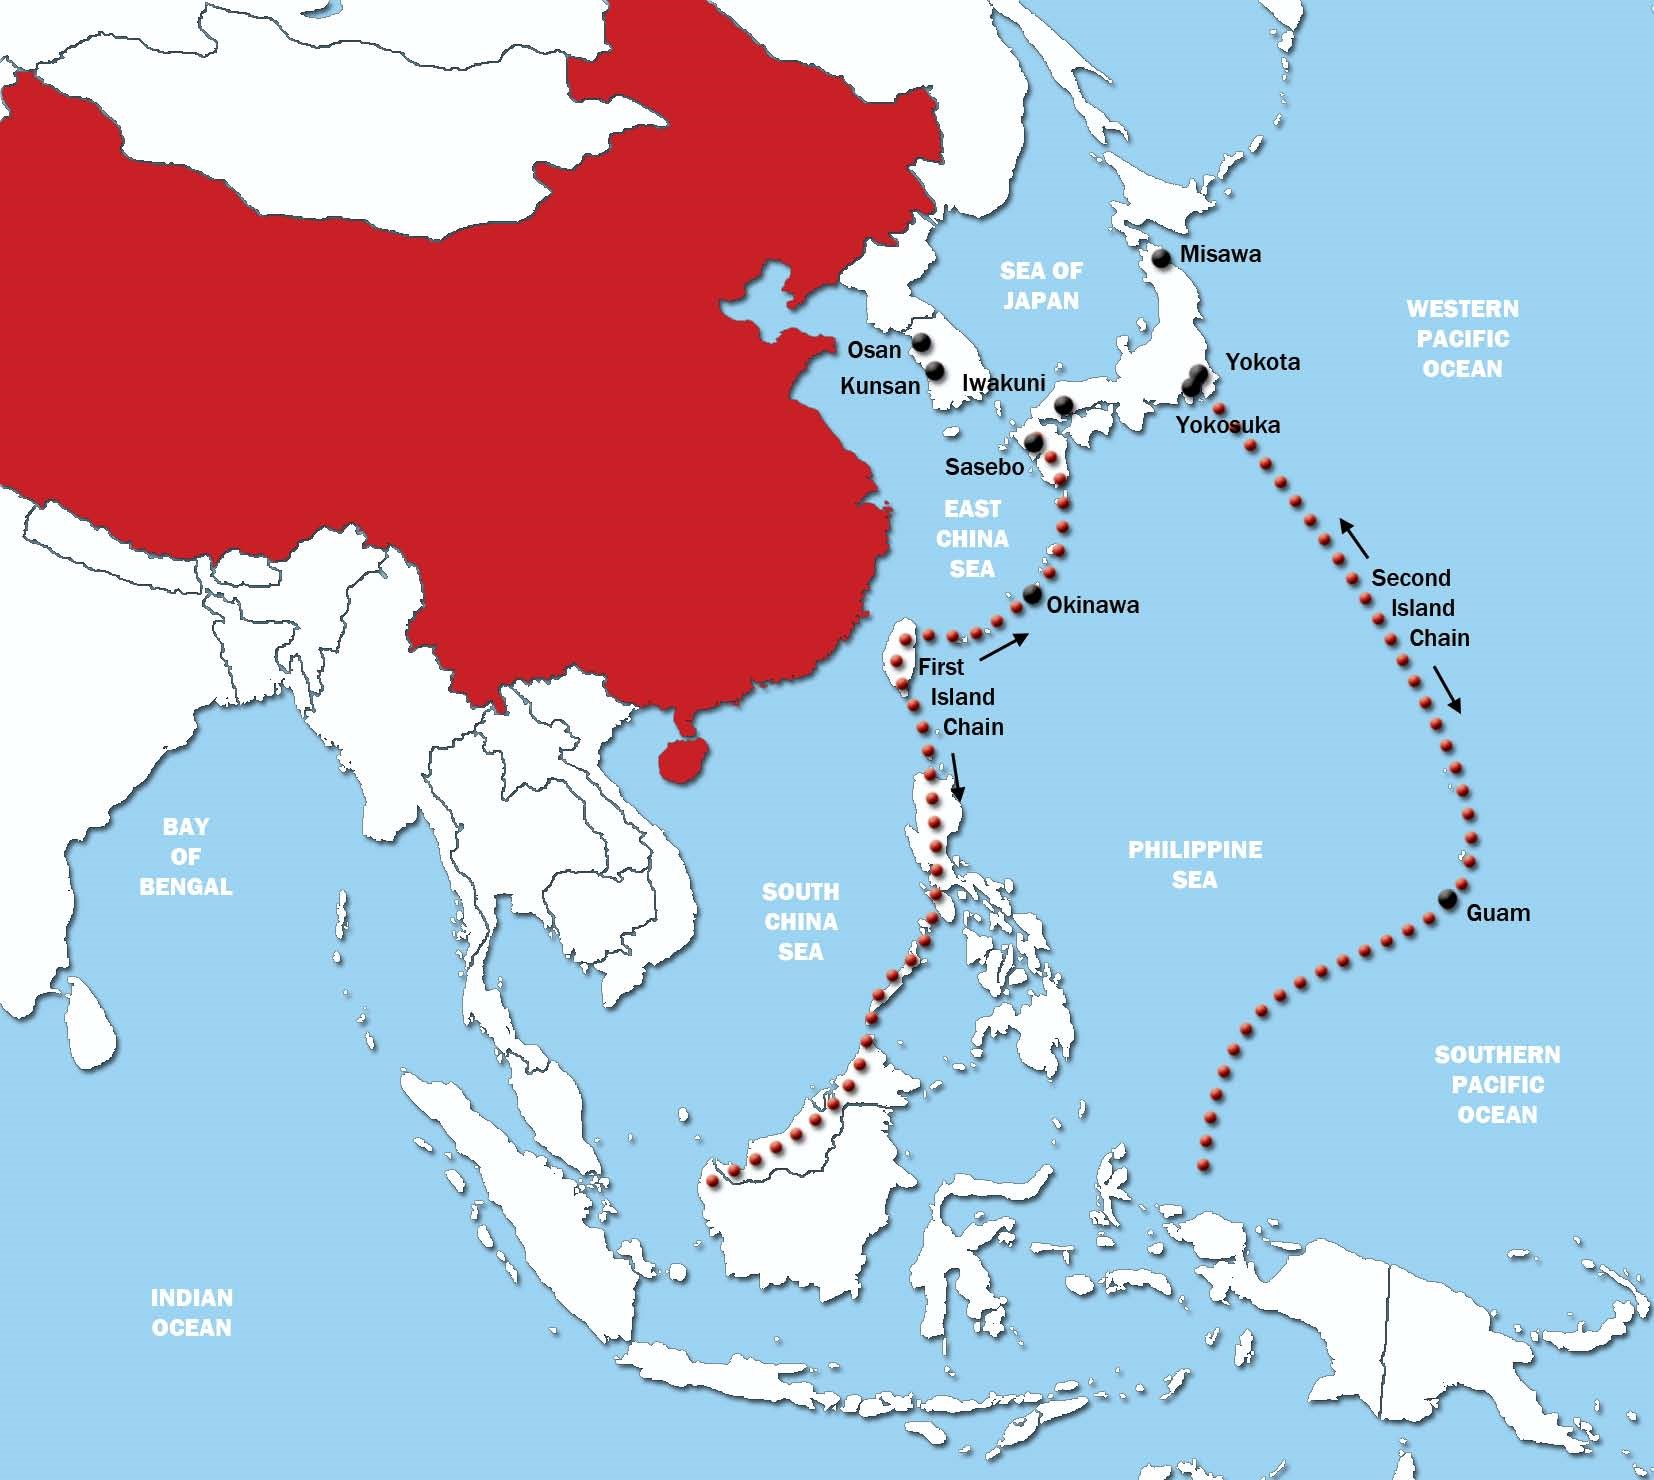 A map of the Asia-Pacific with the first and second island chains indicated. (Consortium of Defense Analysts)